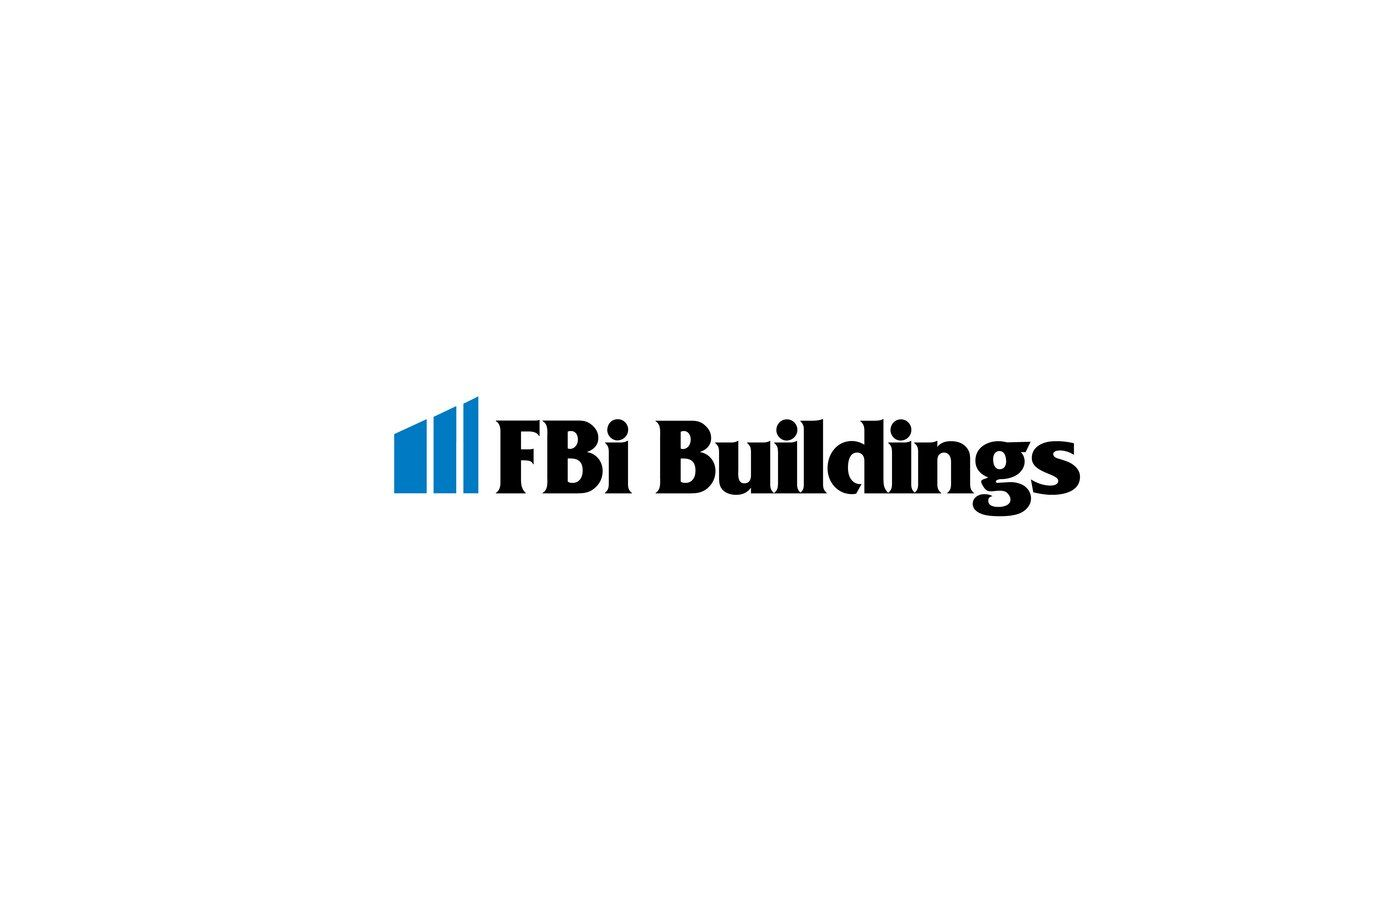 Summit_About Us_FBi Buildings-01